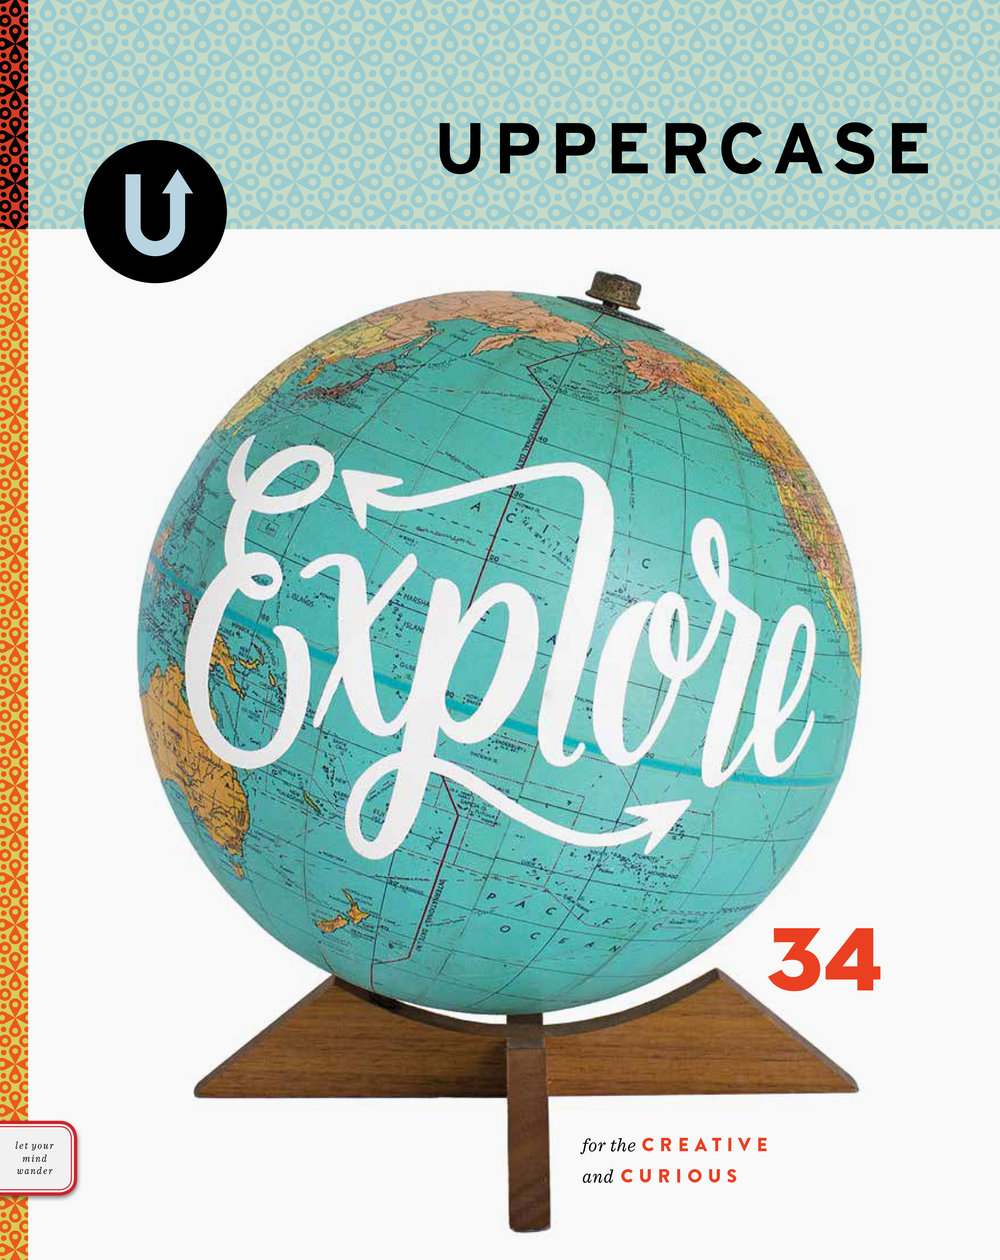 UPPERCASE 34 cover by Laura Maxcy.jpg